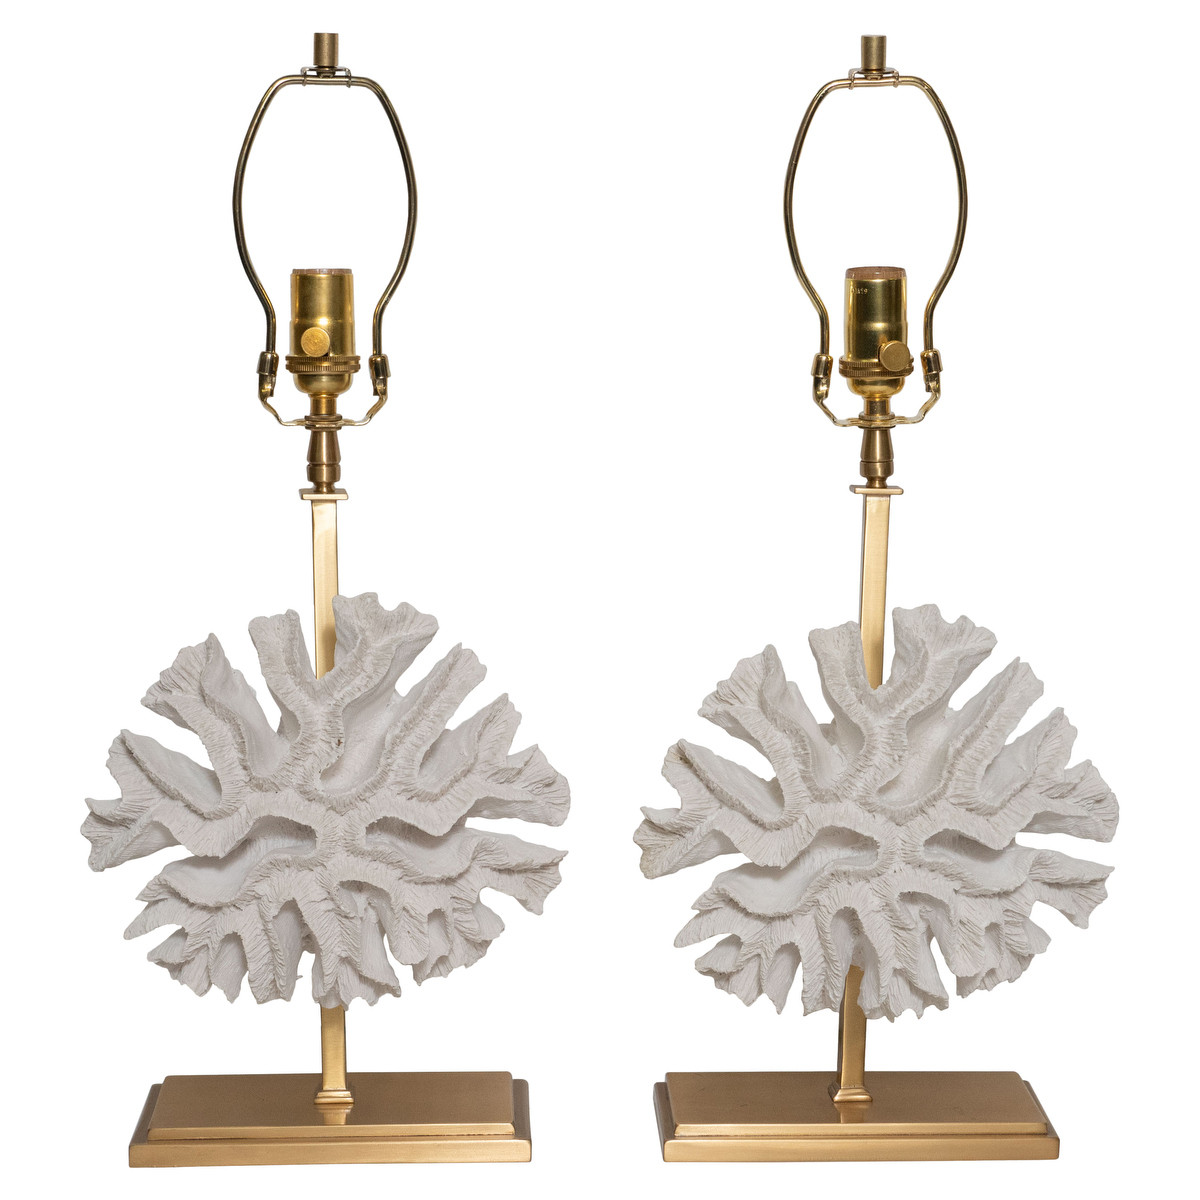 Pair of faux coral table lamps